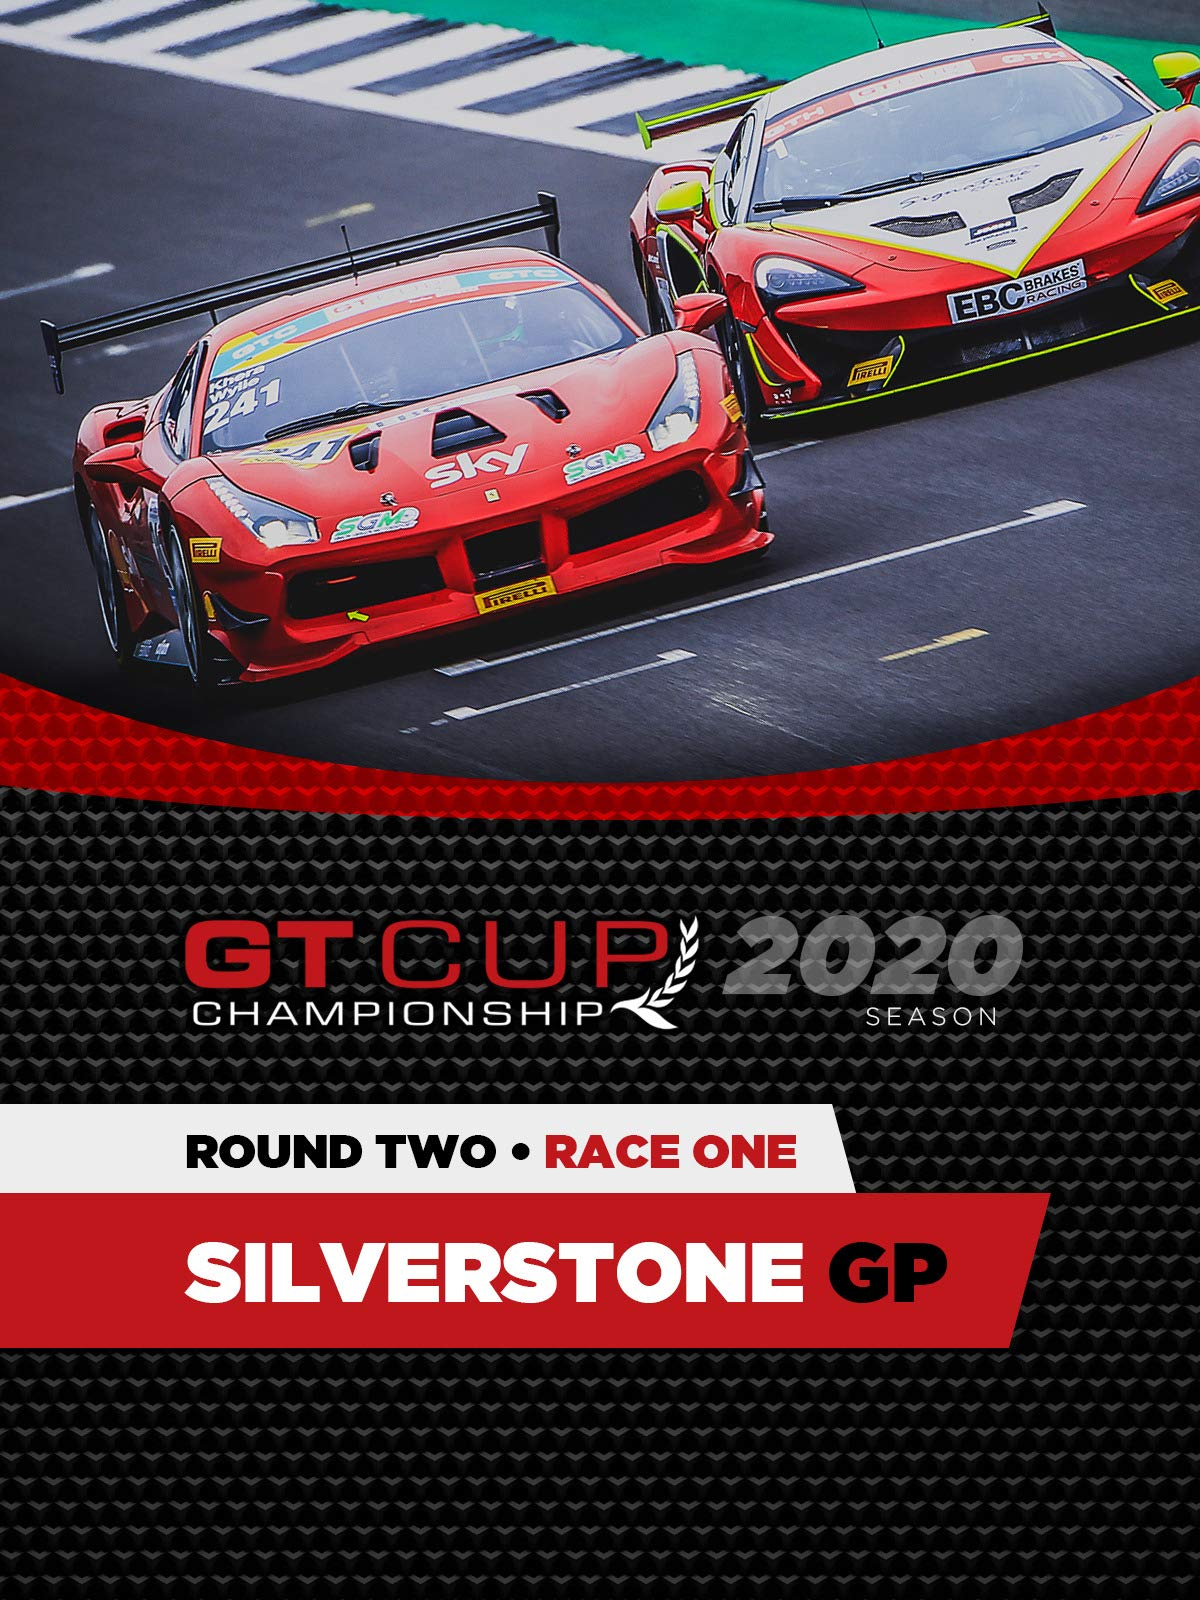 GT Cup 2020 Round TWO Race ONE Silverstone